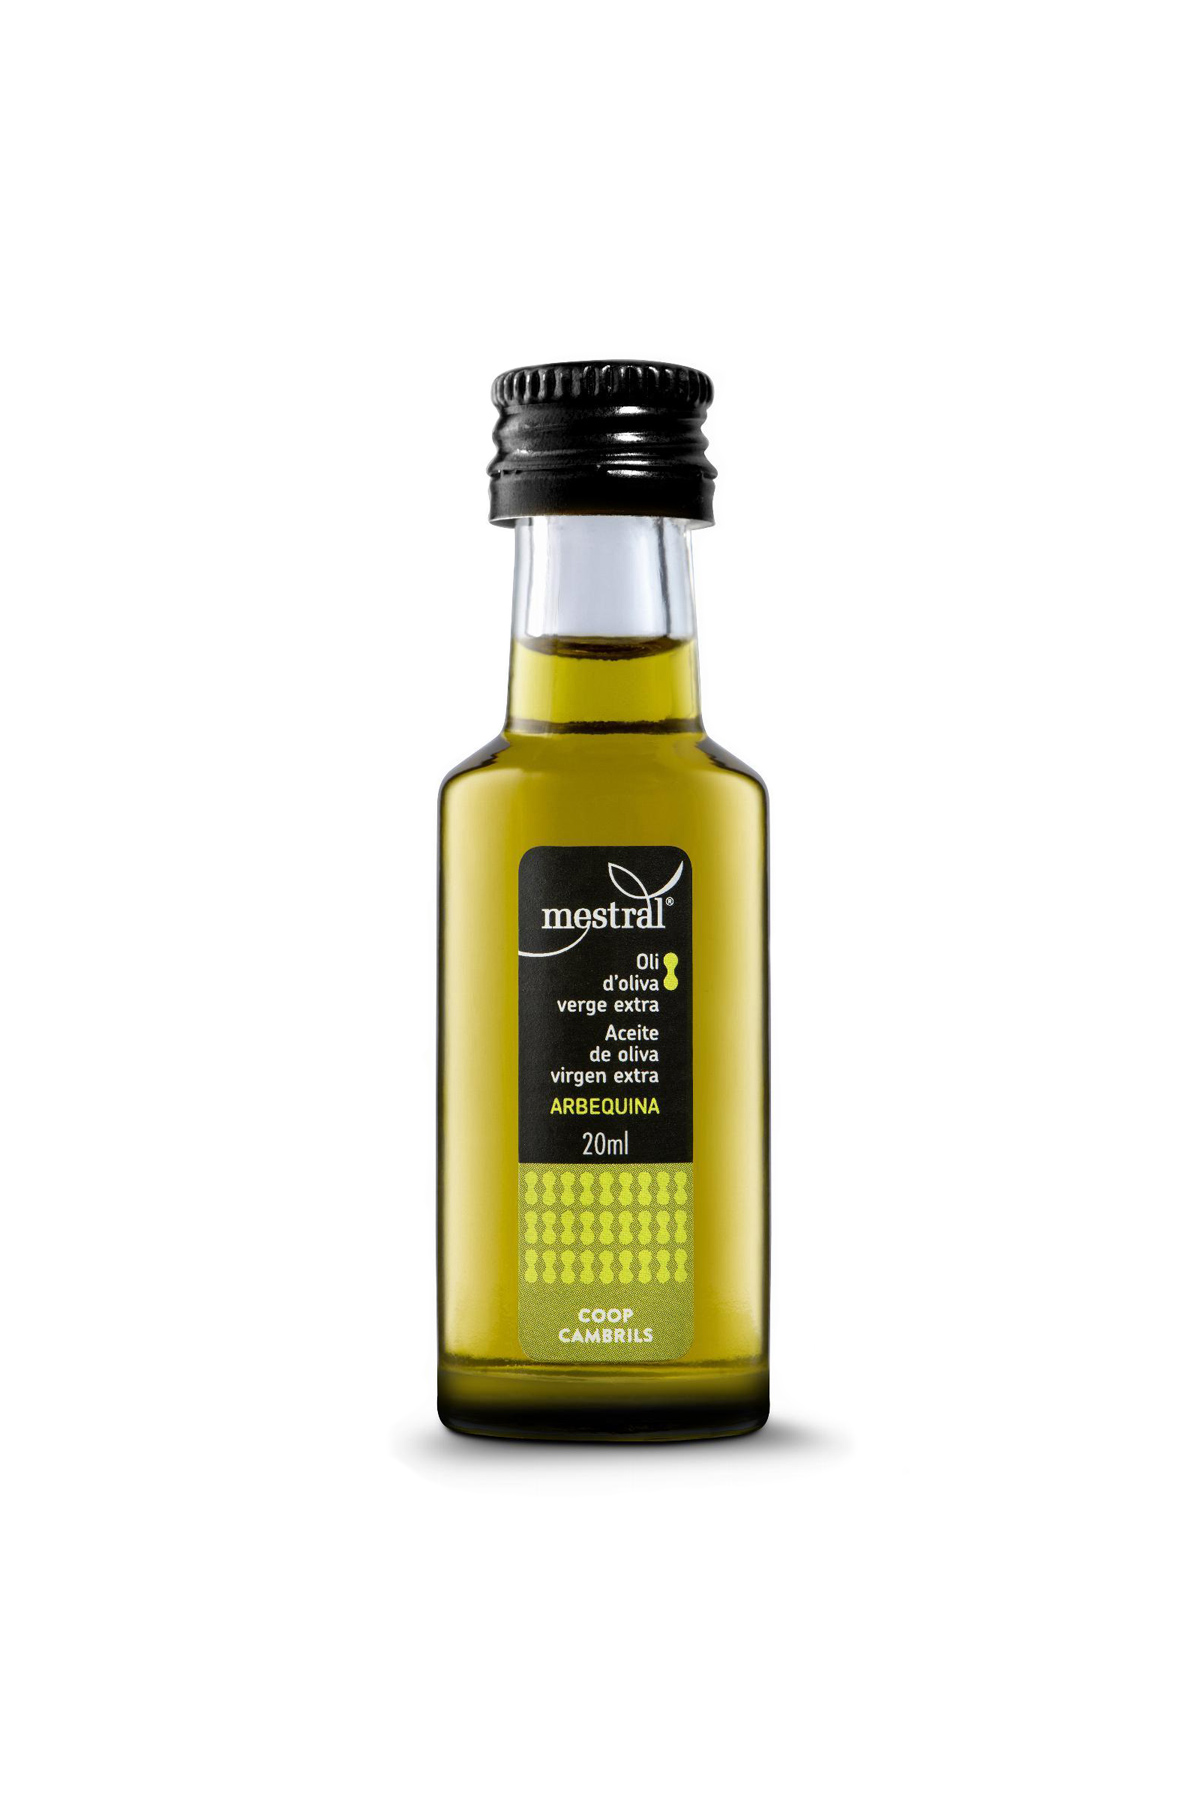 Mignonette dosette Huile d'olive Vierge Extra Arbequina Mestral 40 x 20 ml